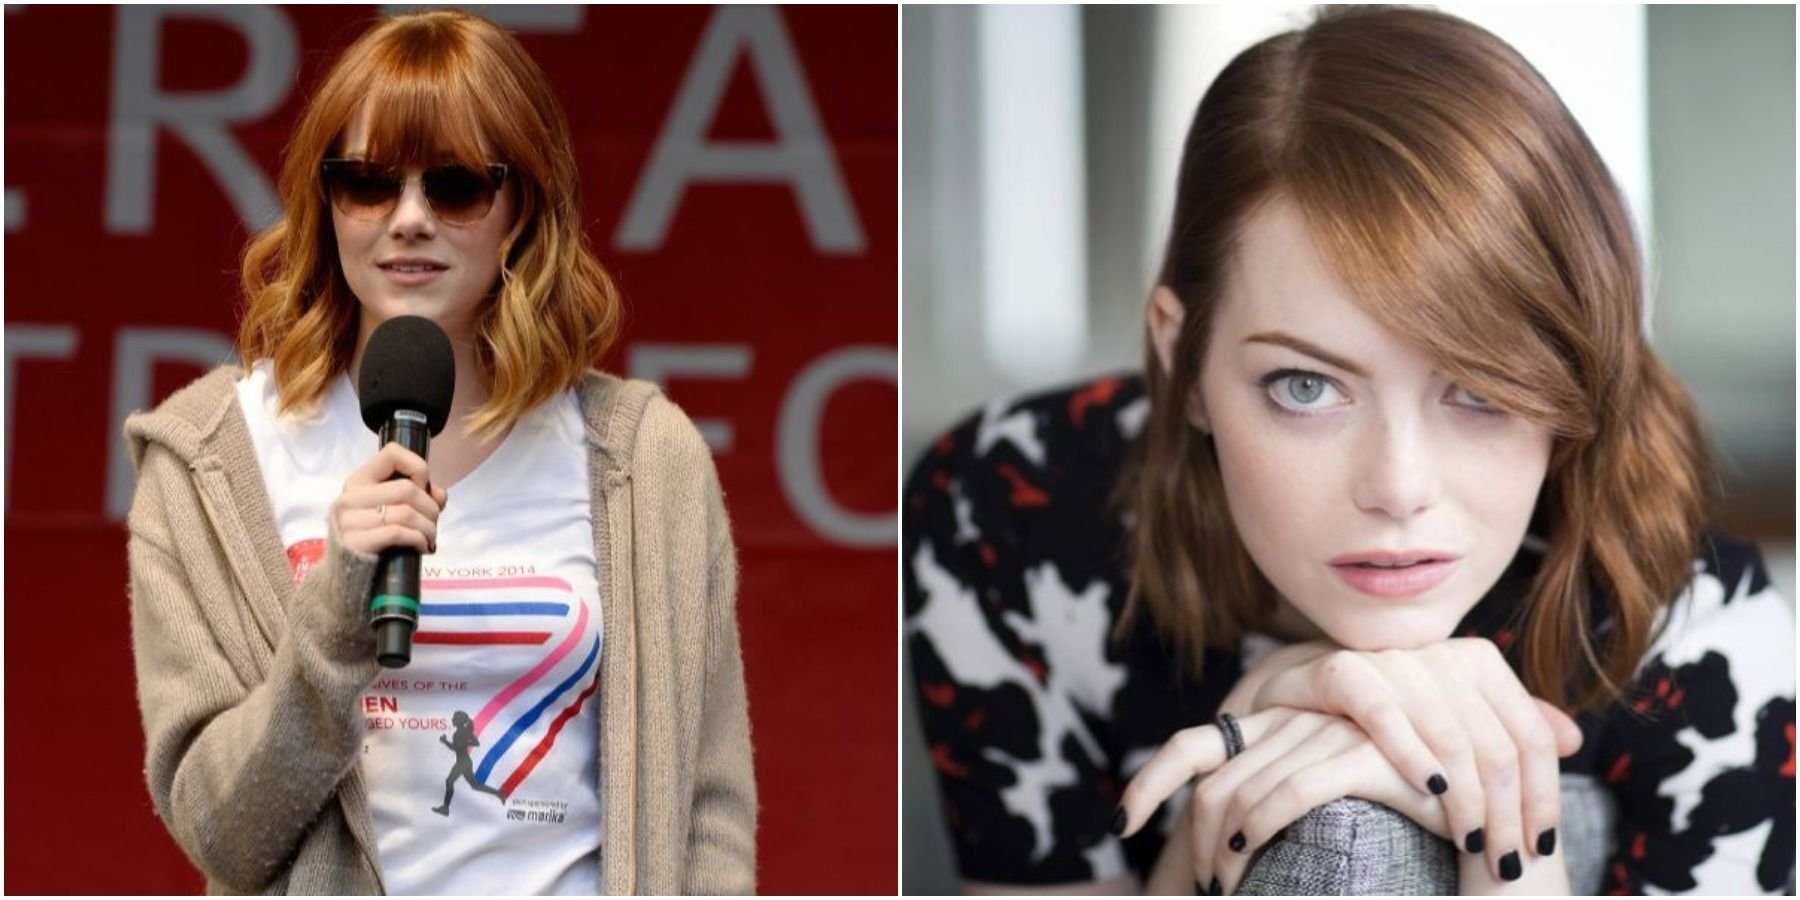 Emma Stone's Net Worth & 9 Other Facts About Her